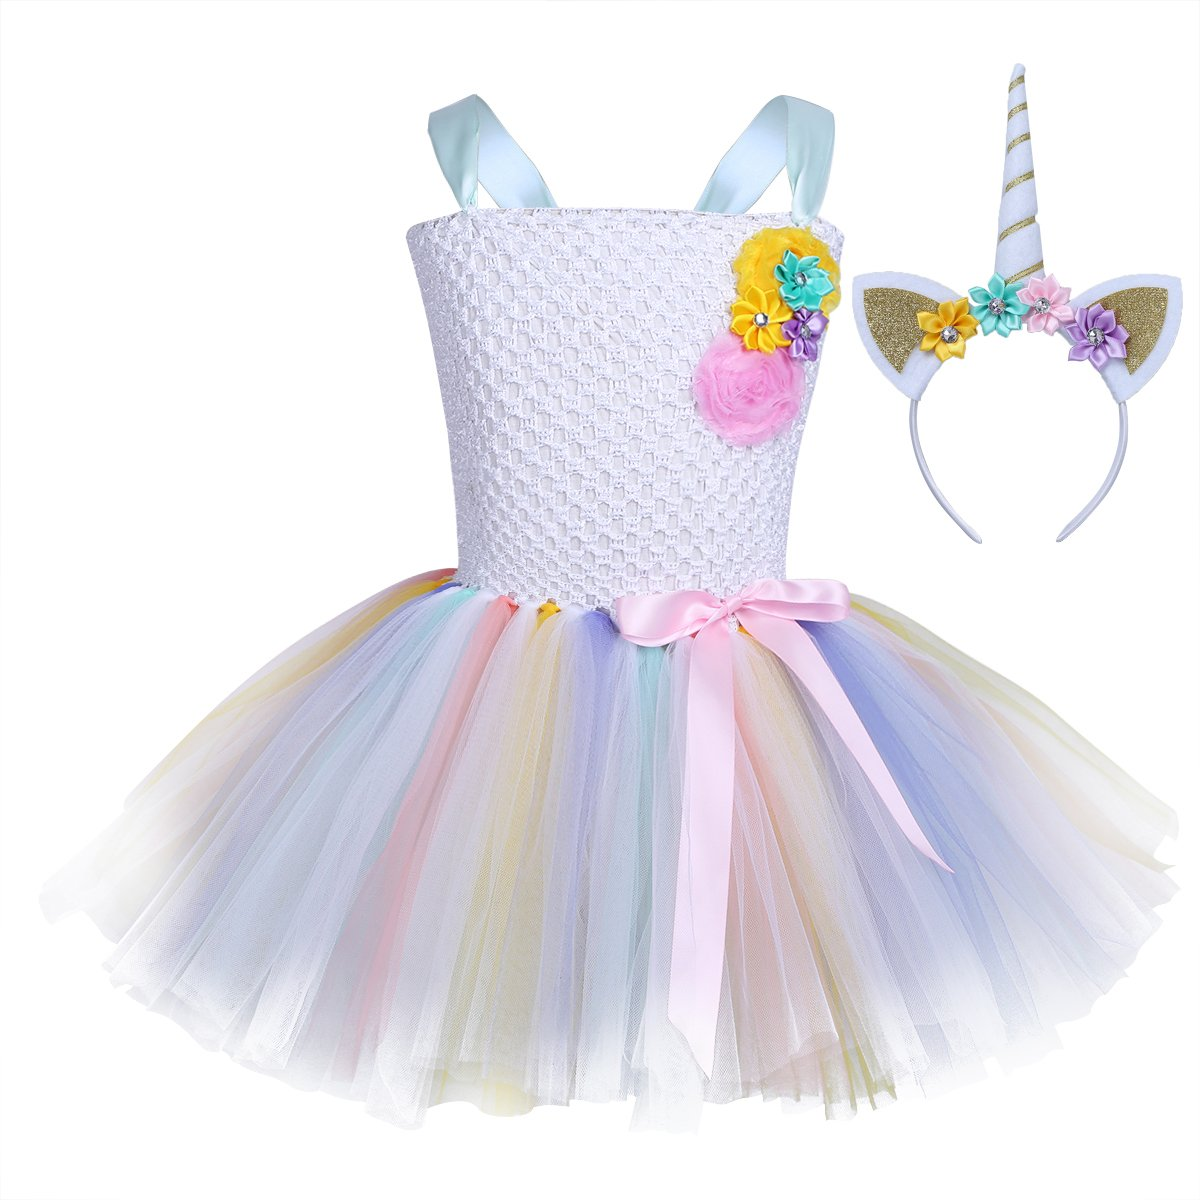 iEFiEL Girls Ballet Tutu Tulle Dress Birthday Party Costume Kids Princess Pageant Wedding Bridesmaid Dress Tutu + Hairband 5-6